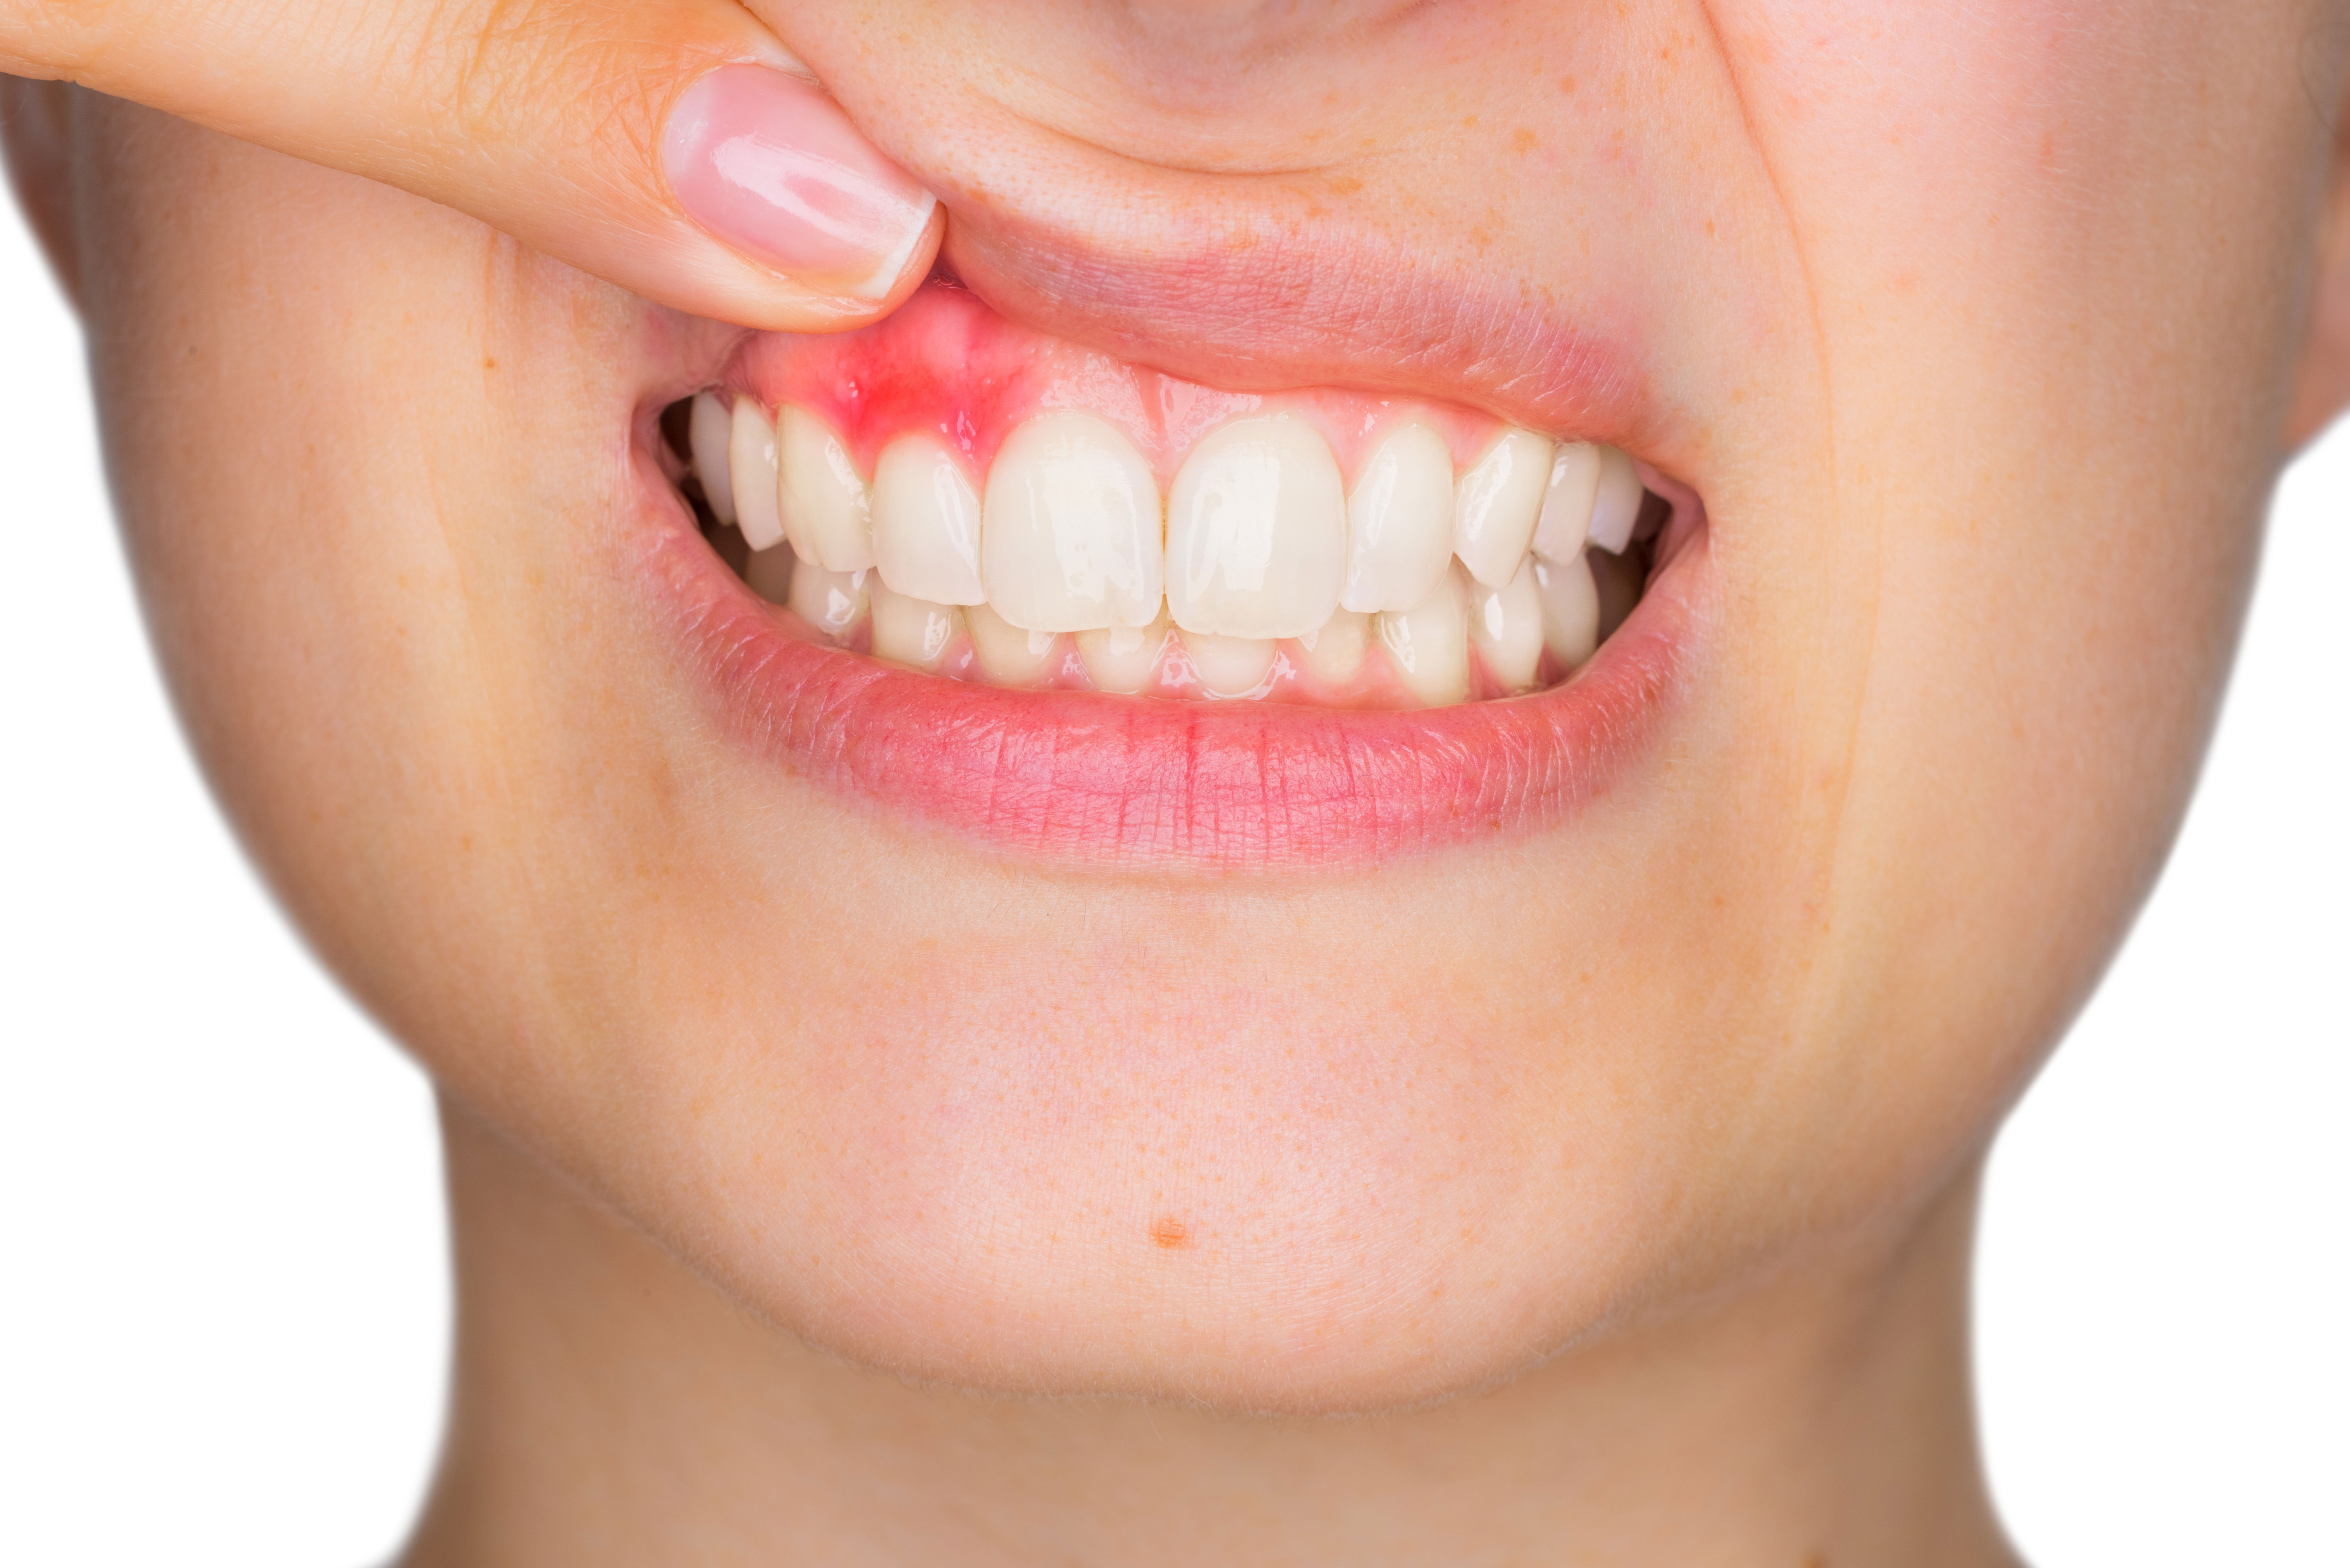 9. Teeth And Gum Care